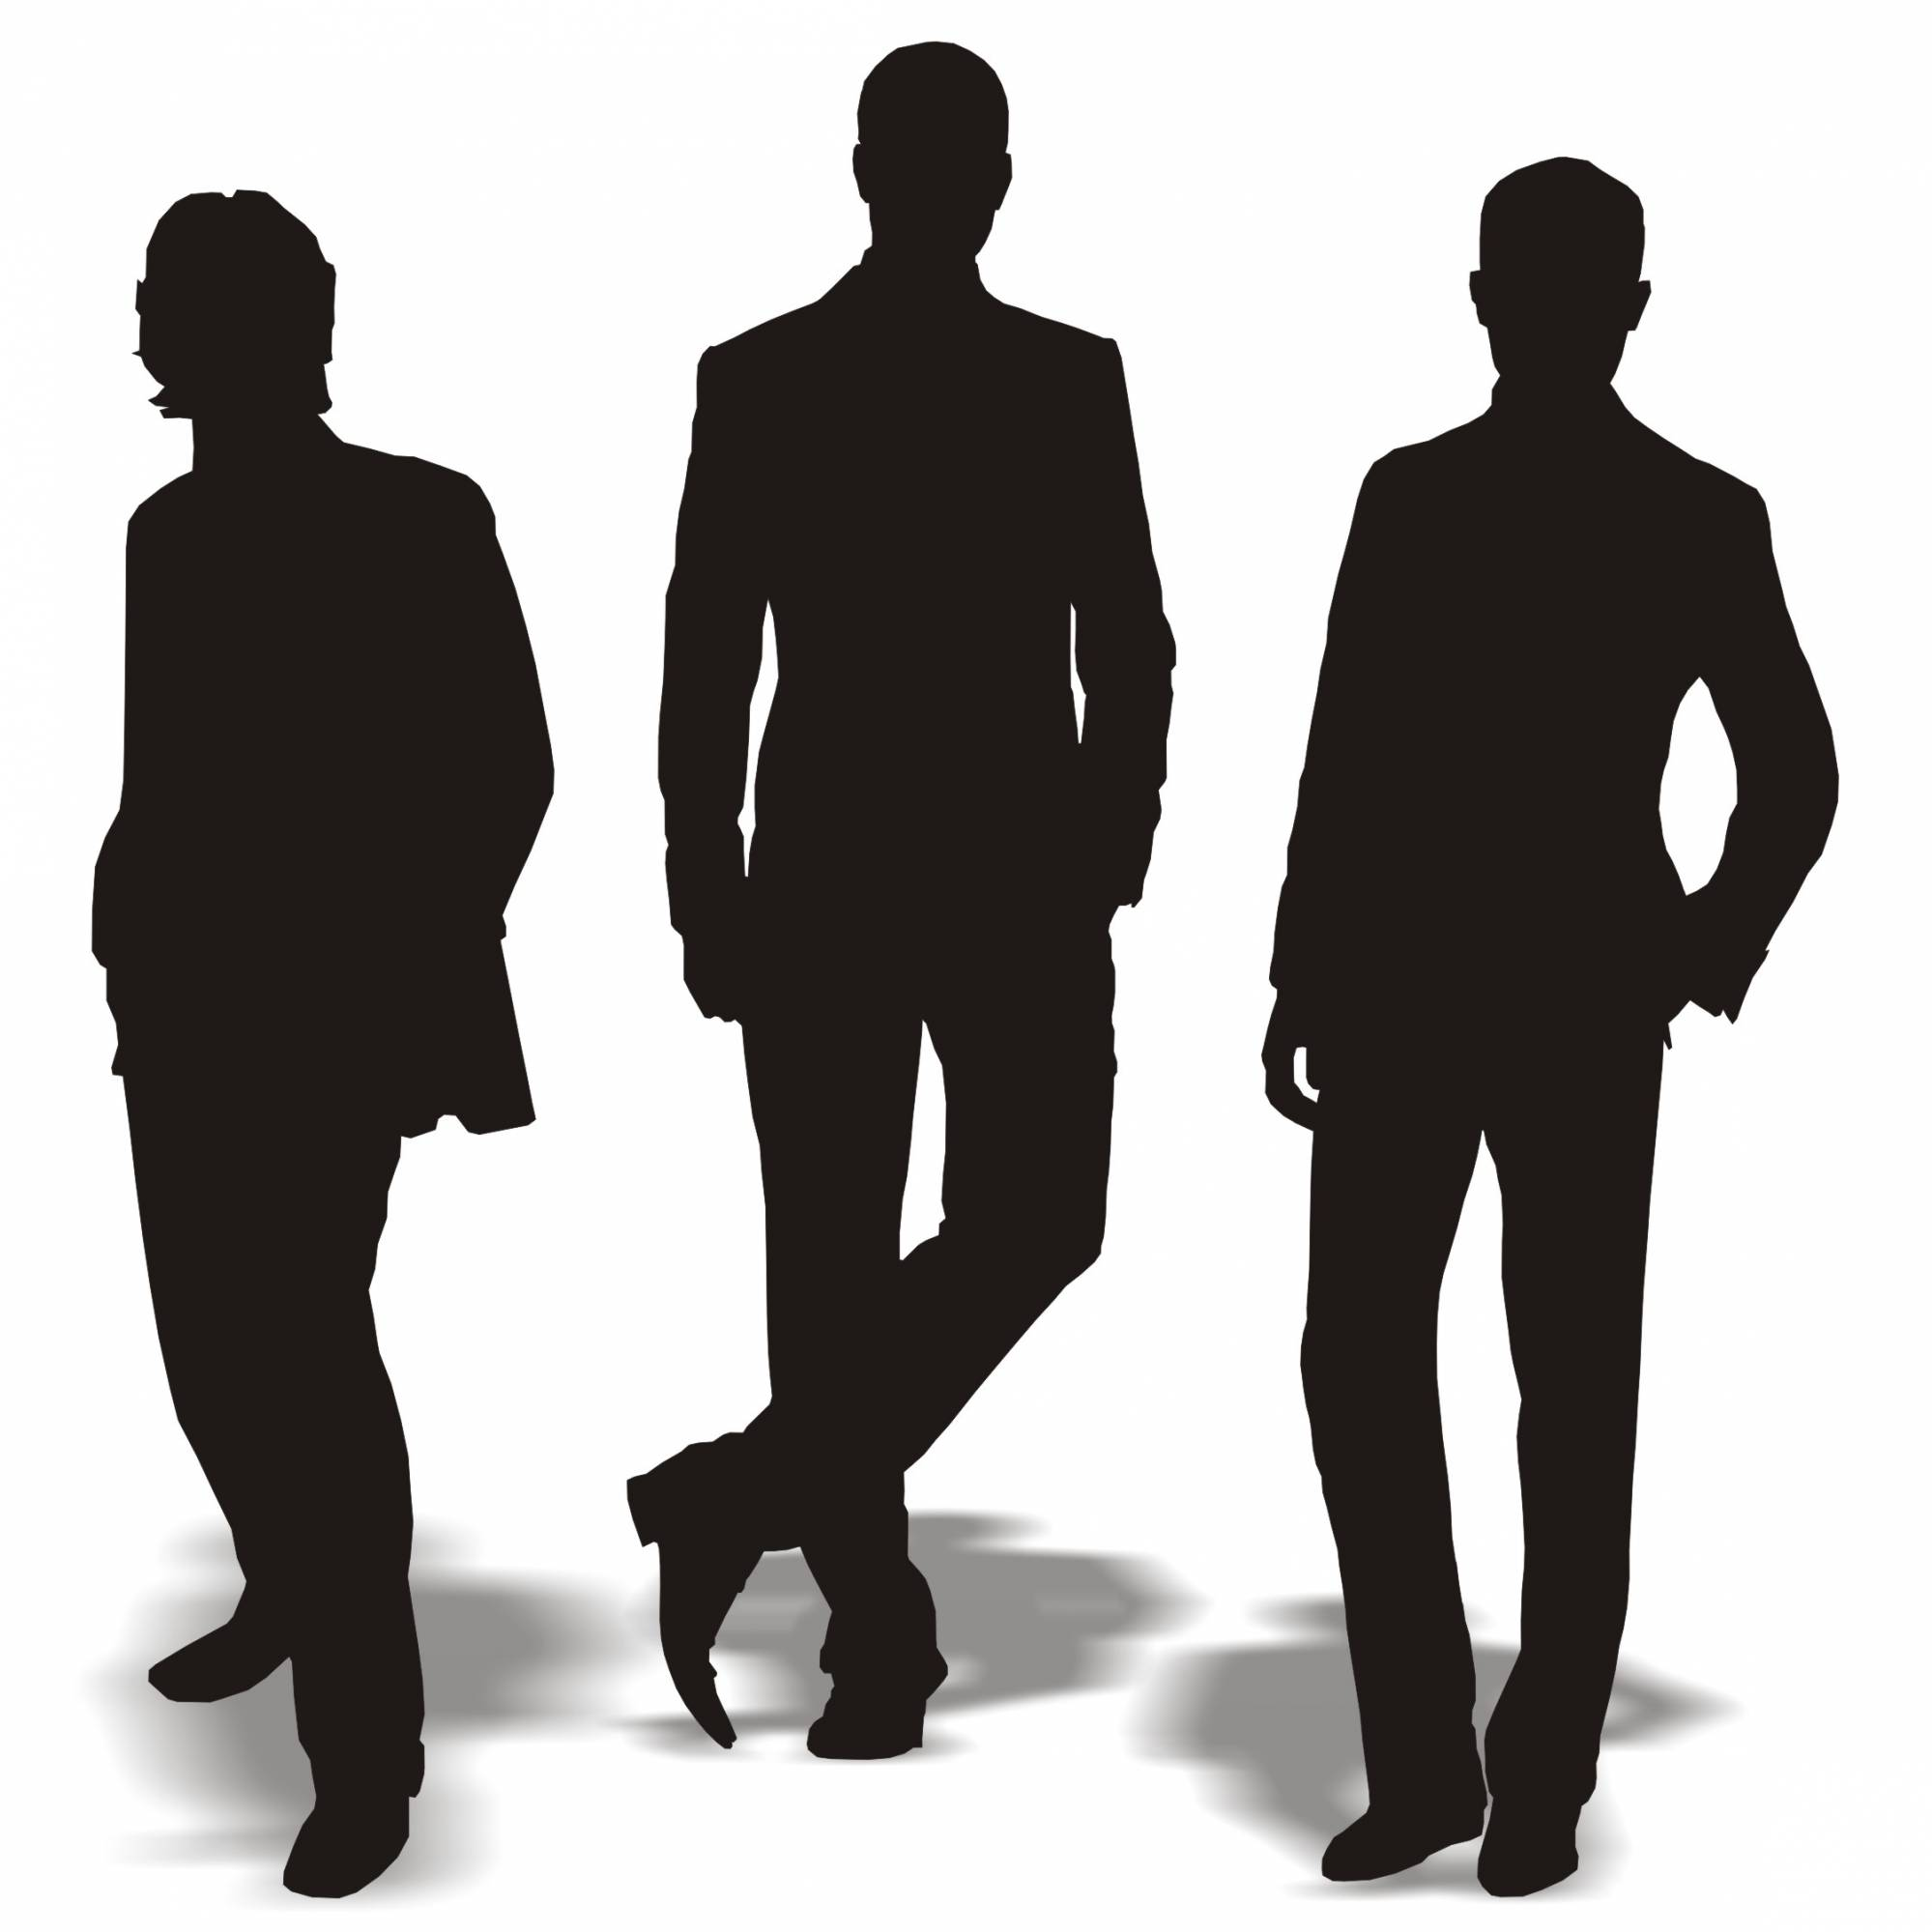 Guy clipart 3 guy. Black man silhouette at